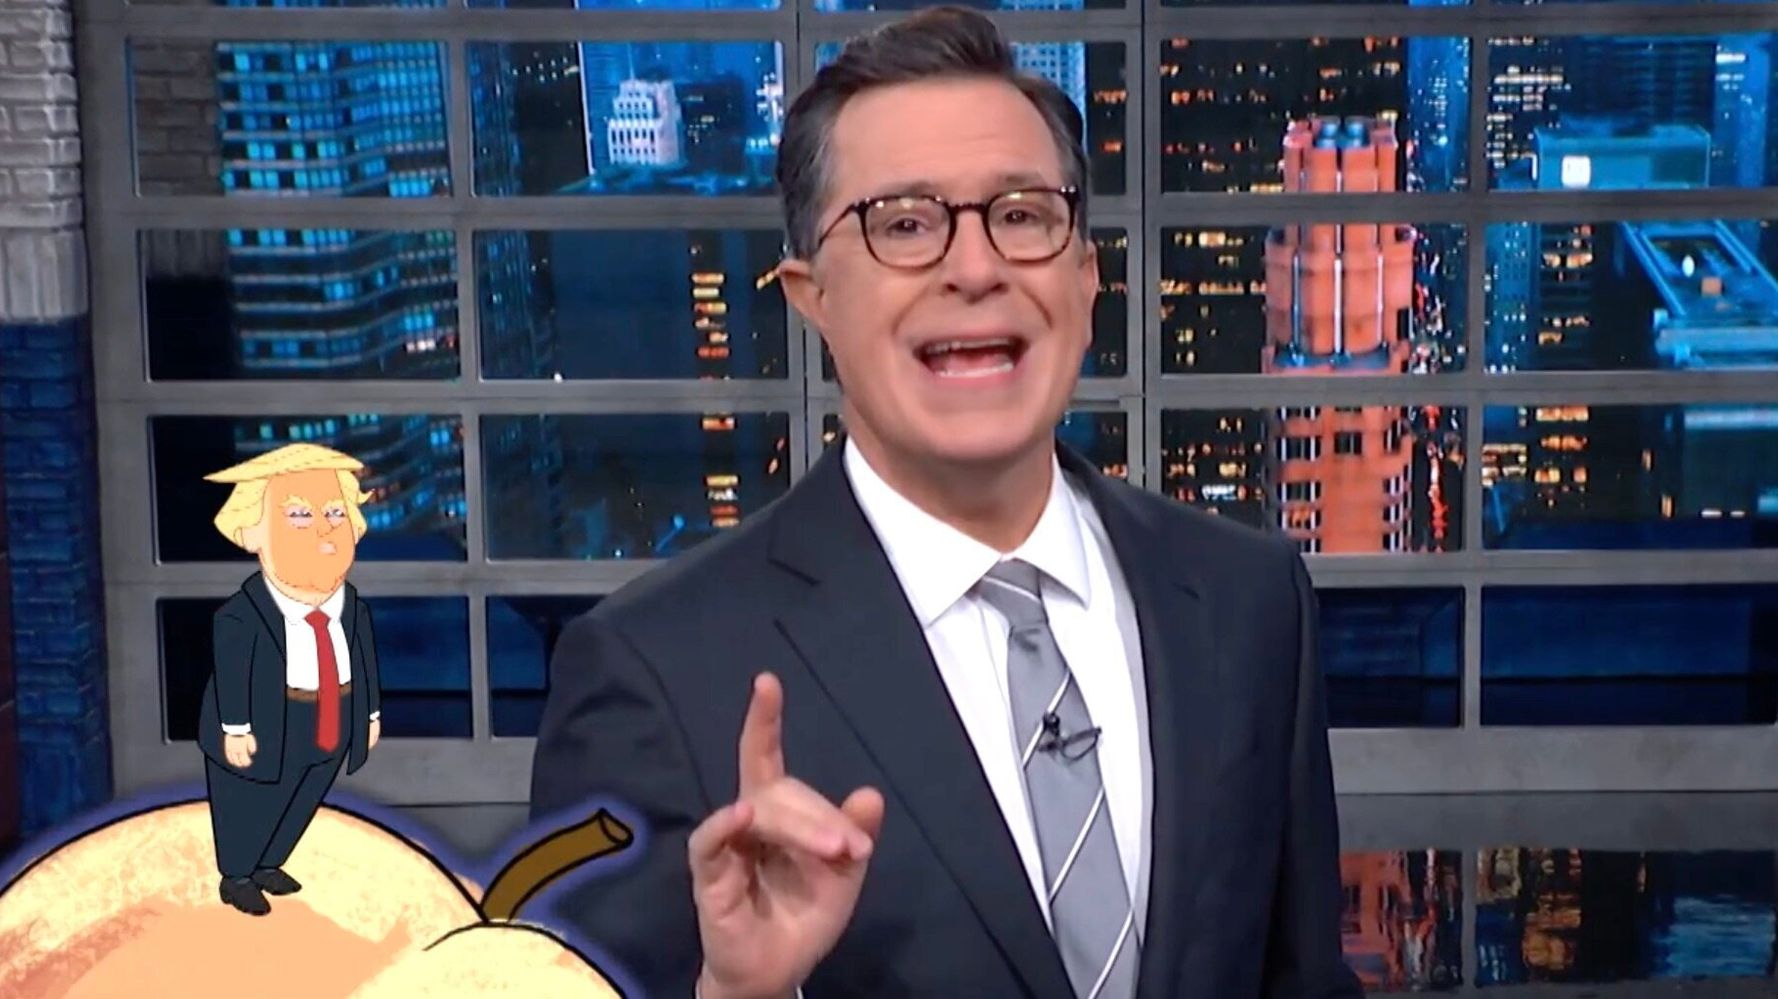 Westlake Legal Group 5db9076e210000593734b6a7 Colbert Nails The GOP's Big Problem With Trying To Discredit New Trump Witness